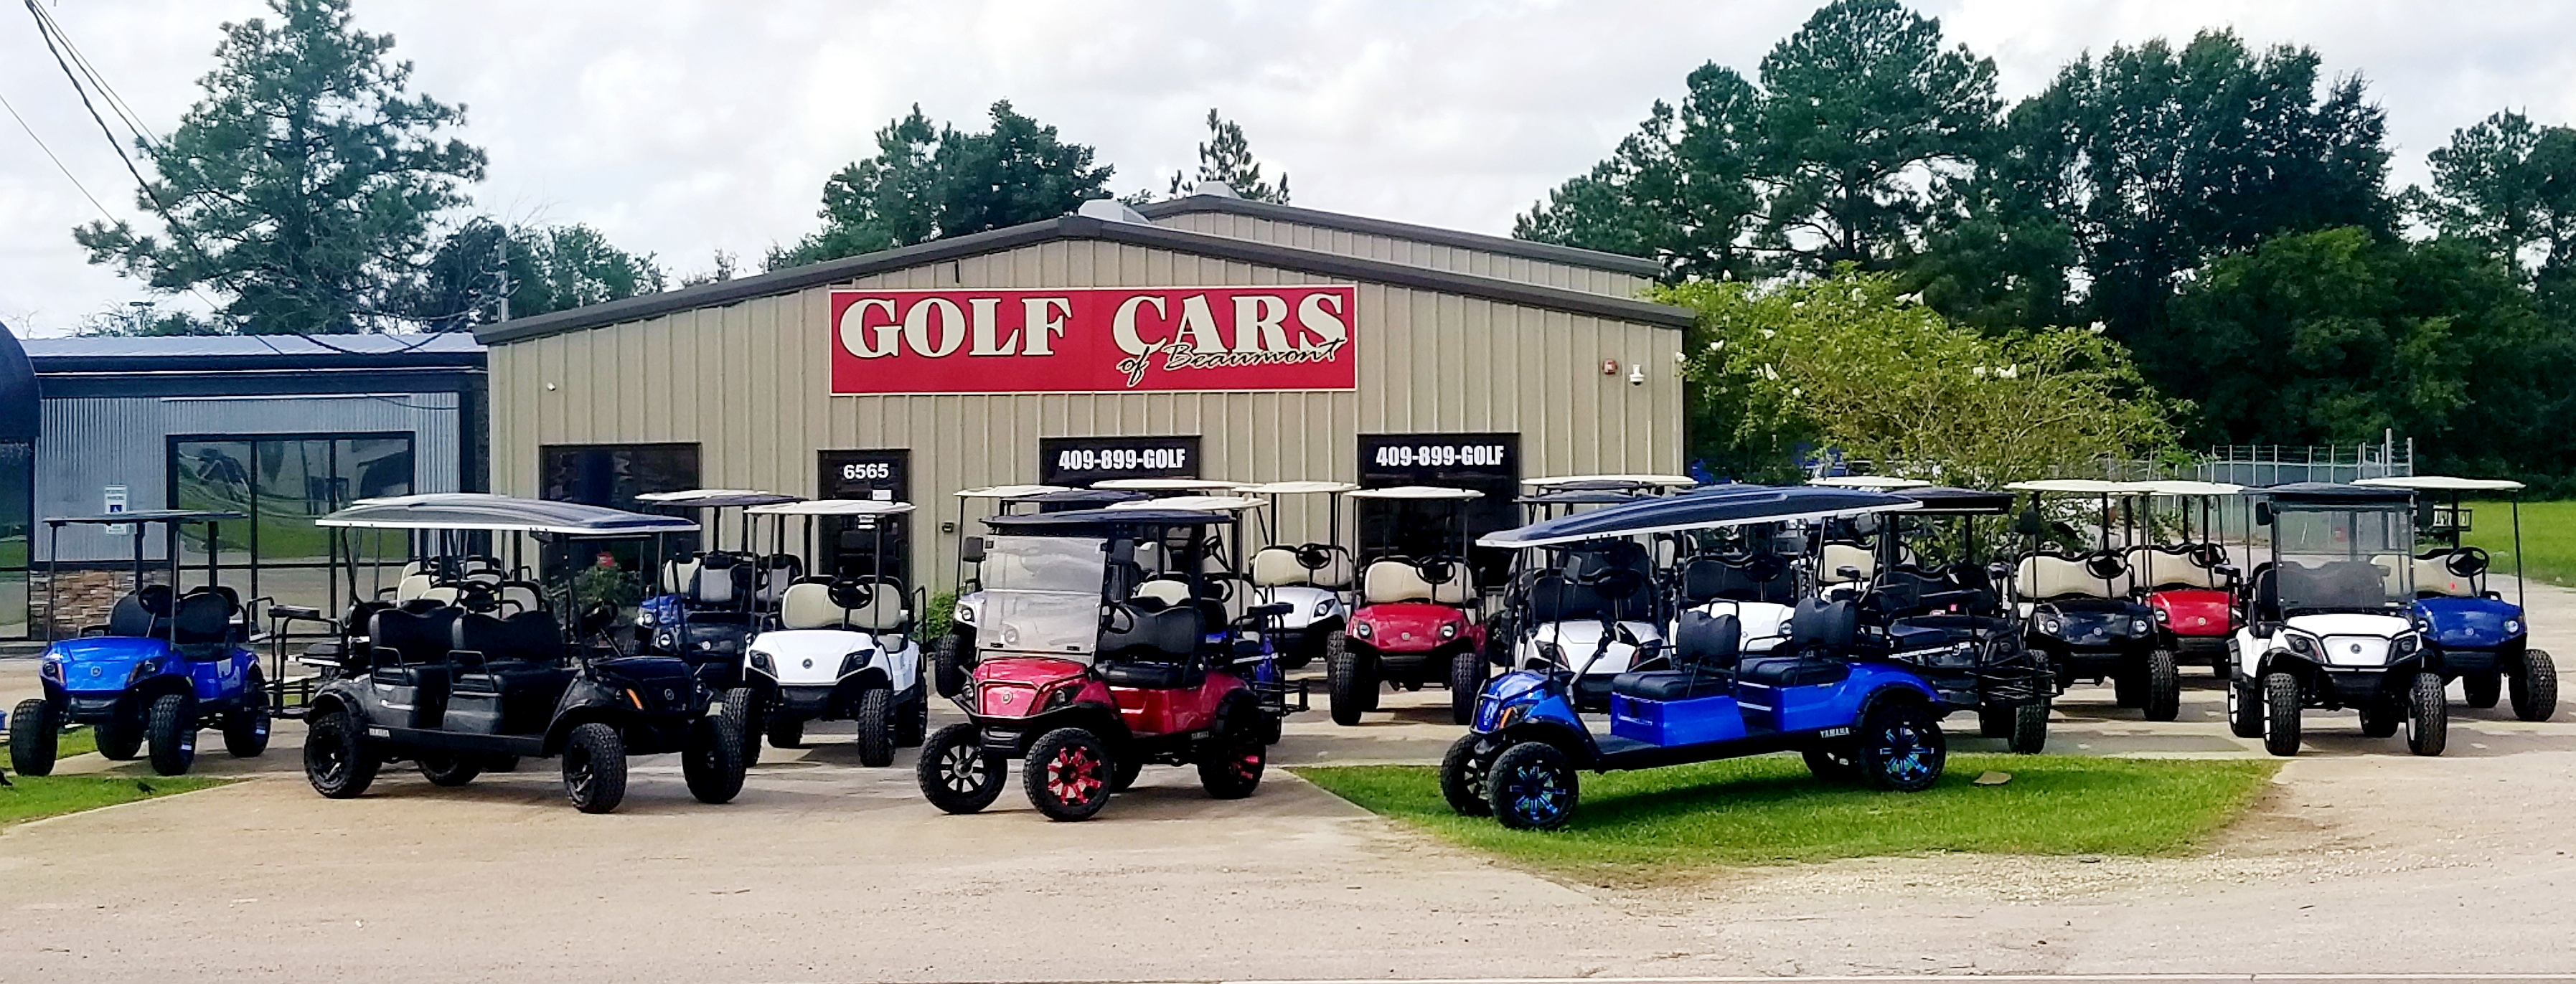 Home Golf Carts New And Used Electric And Gas Carts From Golf - Car show beaumont tx